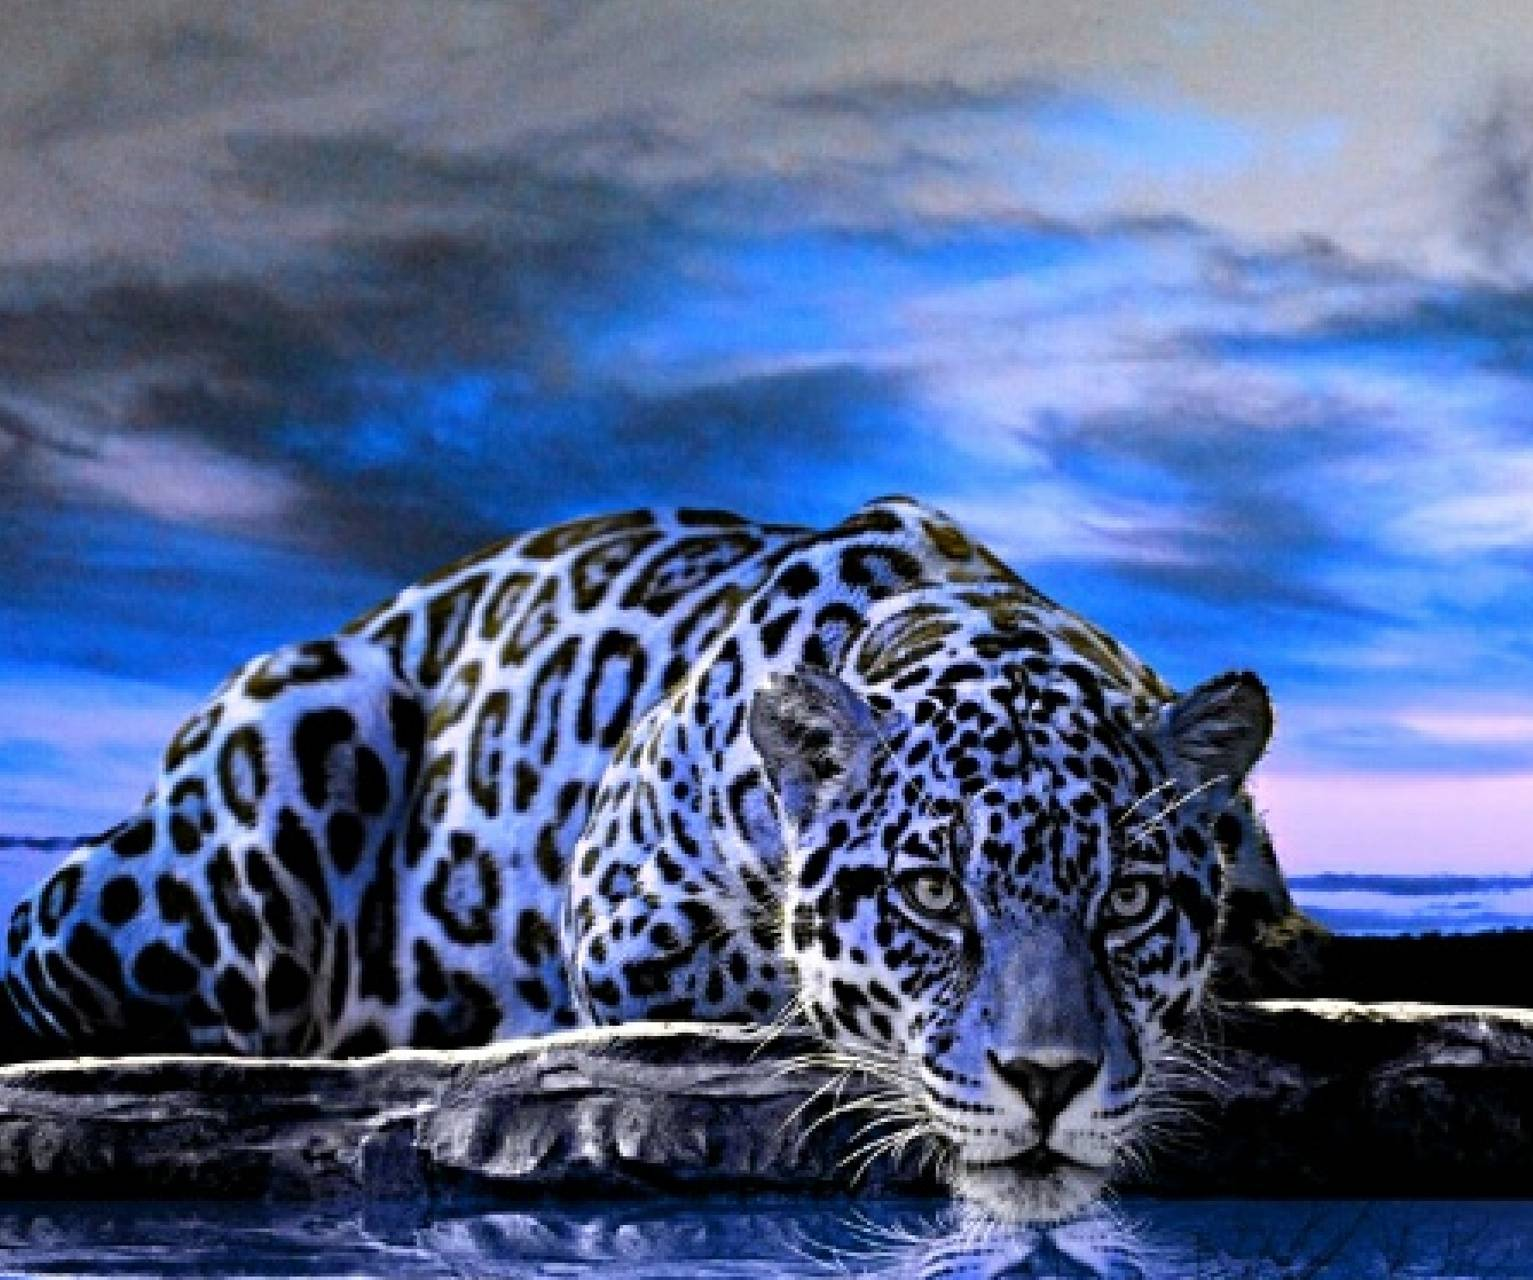 Blue Jaguar Cat Wallpaper By Sphinxlars